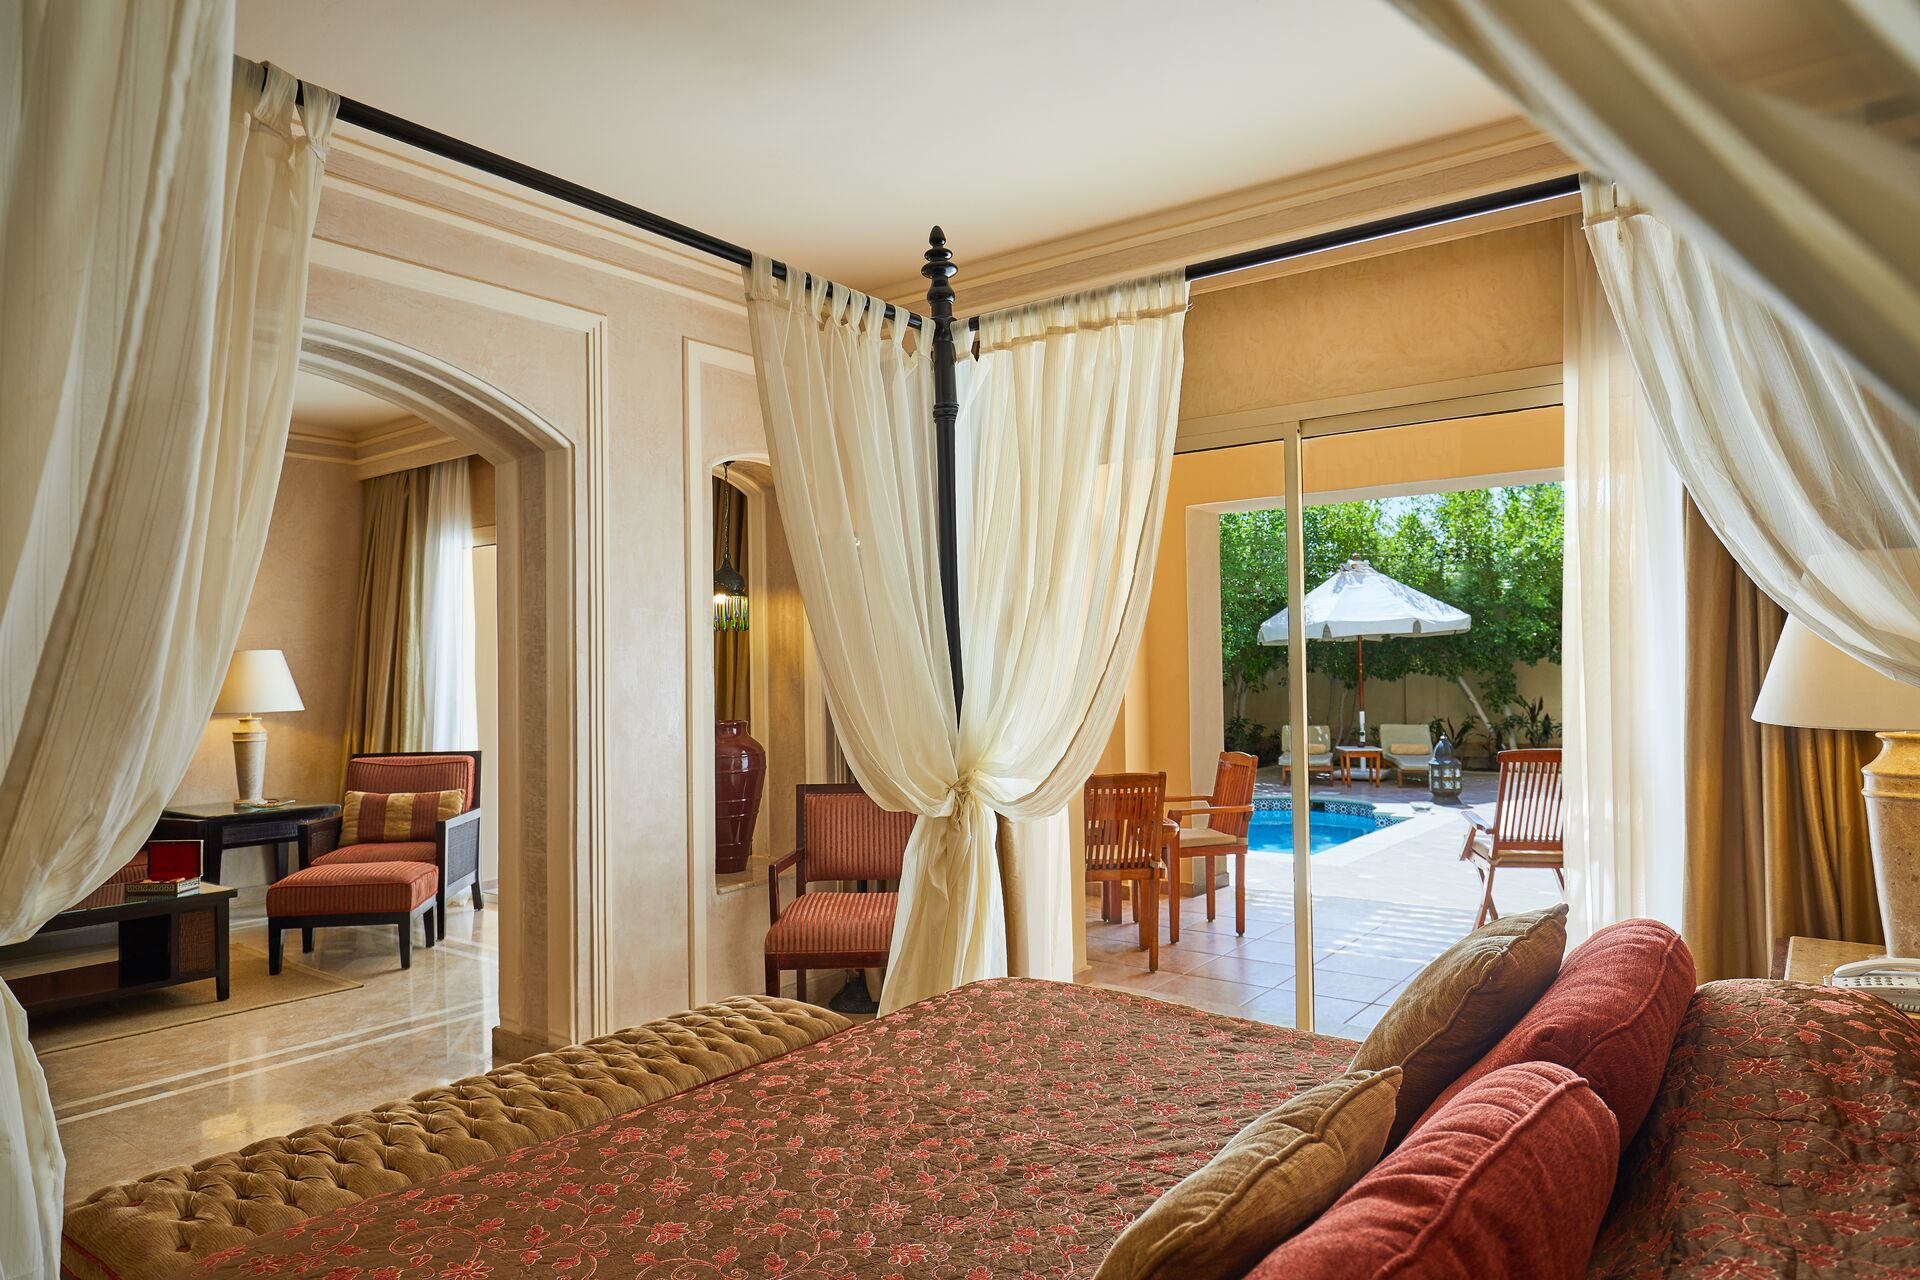 https://cms.satur.sk/data/imgs/tour_image/orig/royal-suite-with-private-pool-020118-1947560.jpg